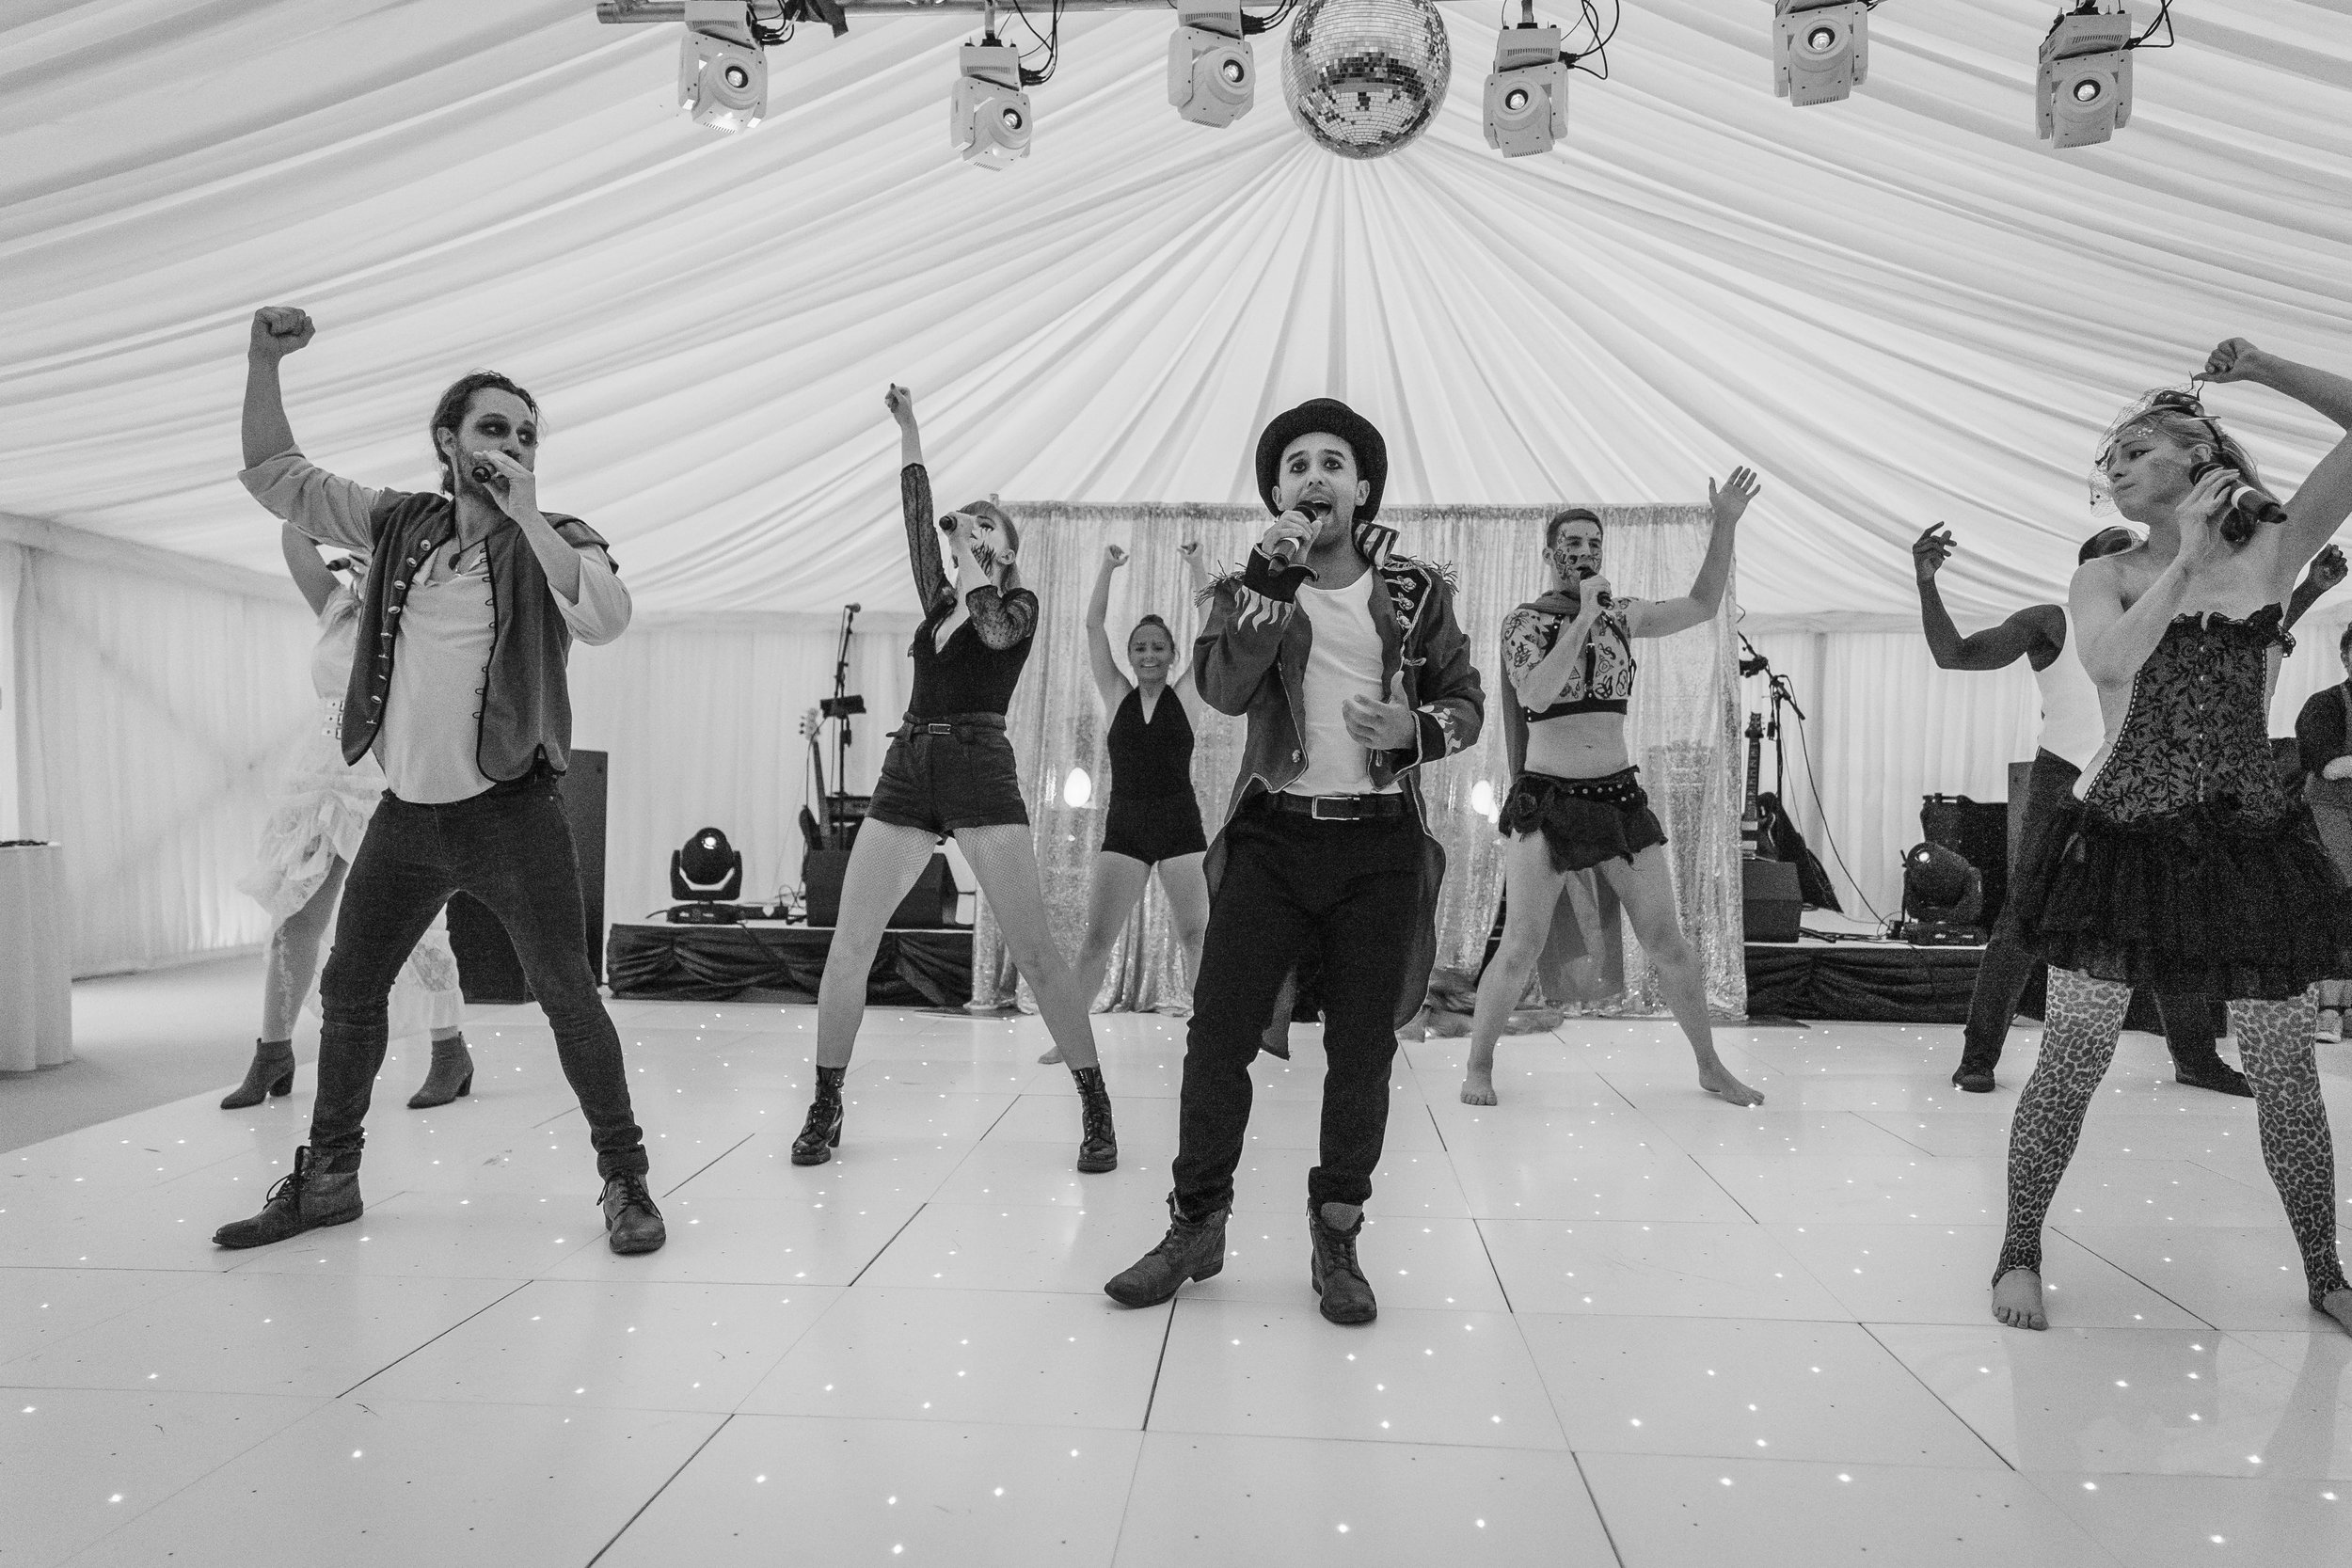 Acts can be adapted for weddings, parties, corporate events, proposals or birthdays!